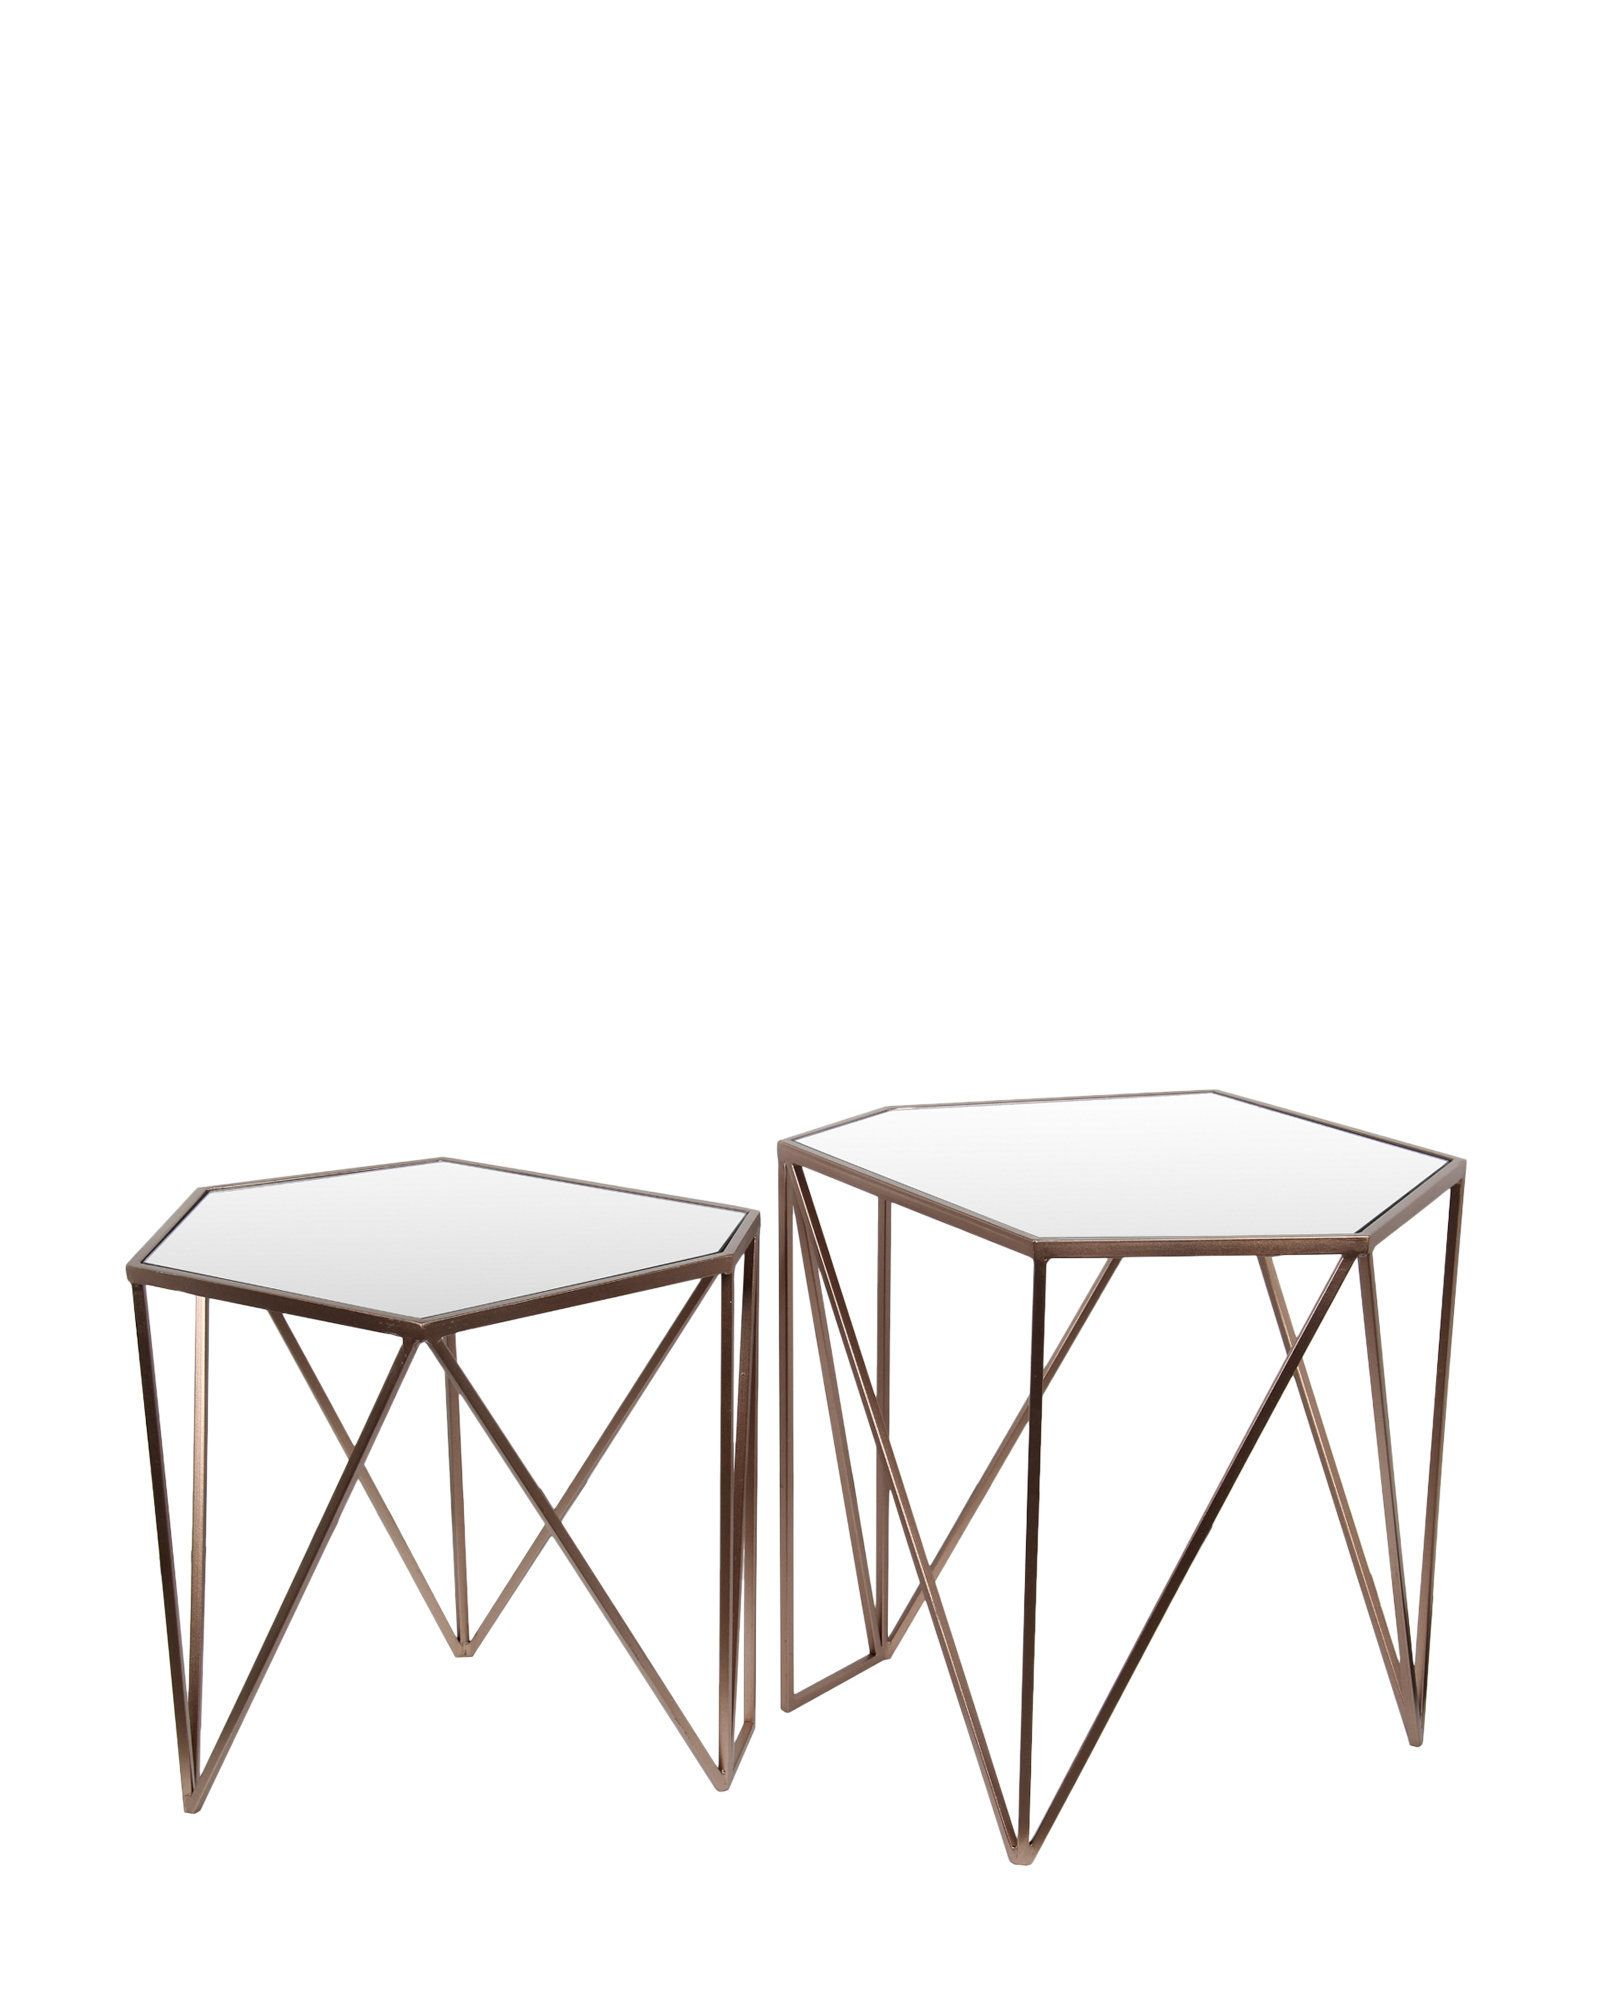 View Larger Image Accent Table Decor Accent Table Sets Sofa End Tables [ 2000 x 1600 Pixel ]